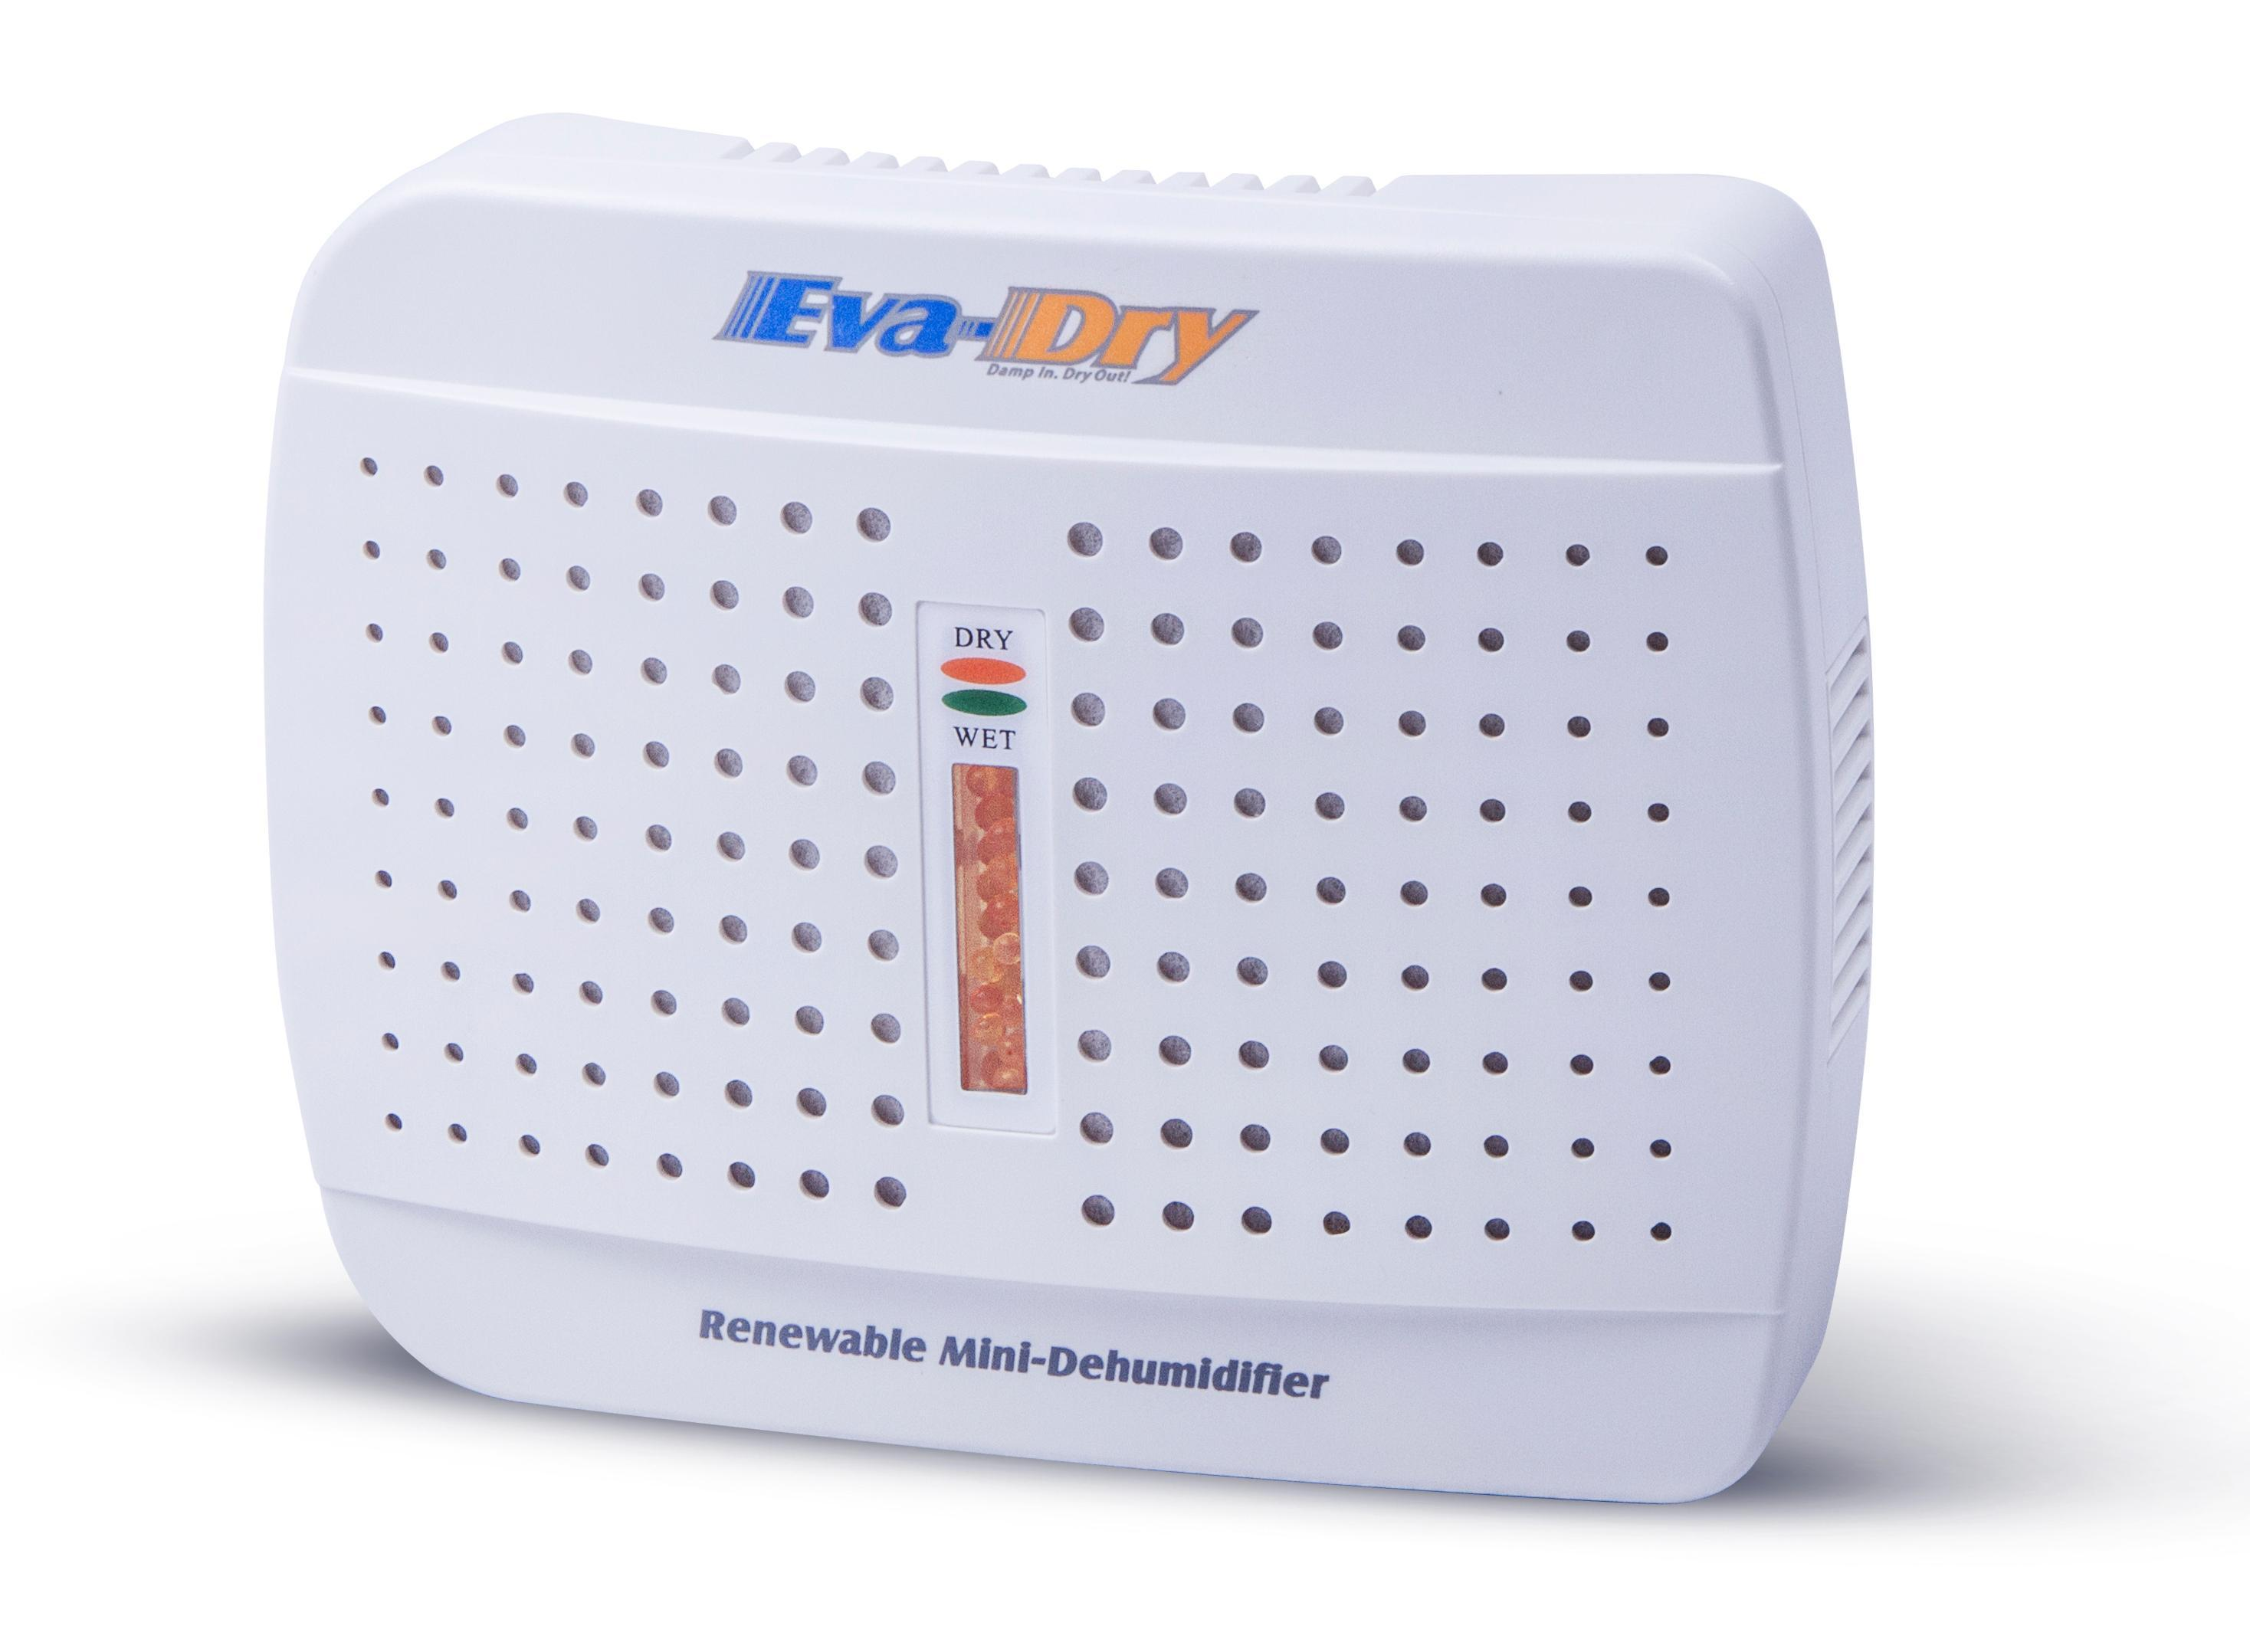 Amazon.com: New and Improved Eva dry E 333 Renewable Mini Dehumidifier  #1E57AD